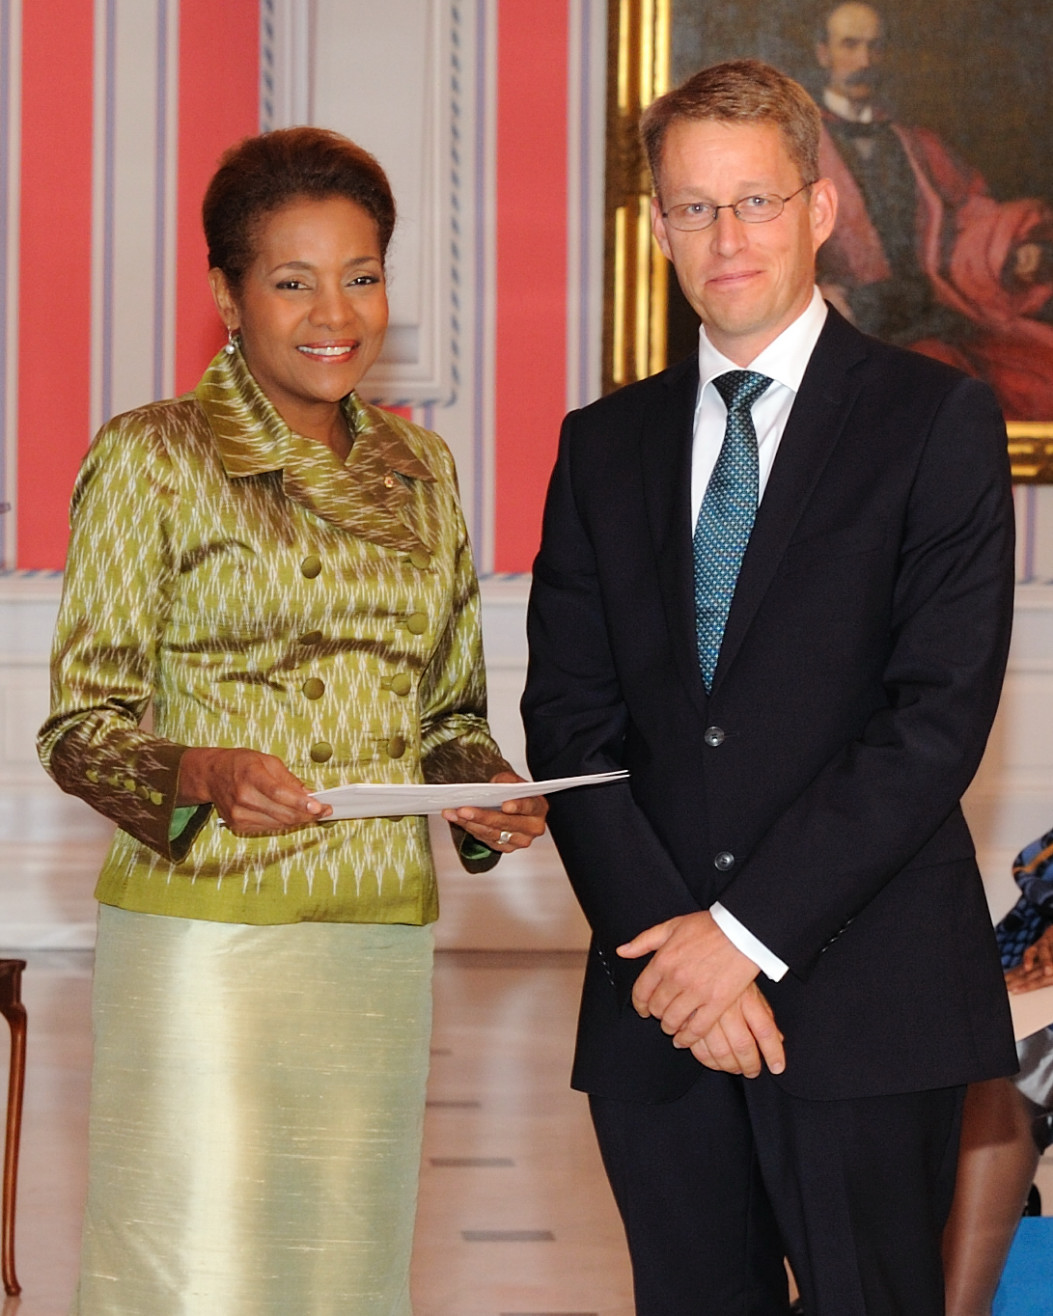 Her Excellency the Right Honourable Michaëlle Jean, Governor General of Canada, received the credentials of His Excellency Teppo Tauriainen, Ambassador-designate of the Kingdom of Sweden.